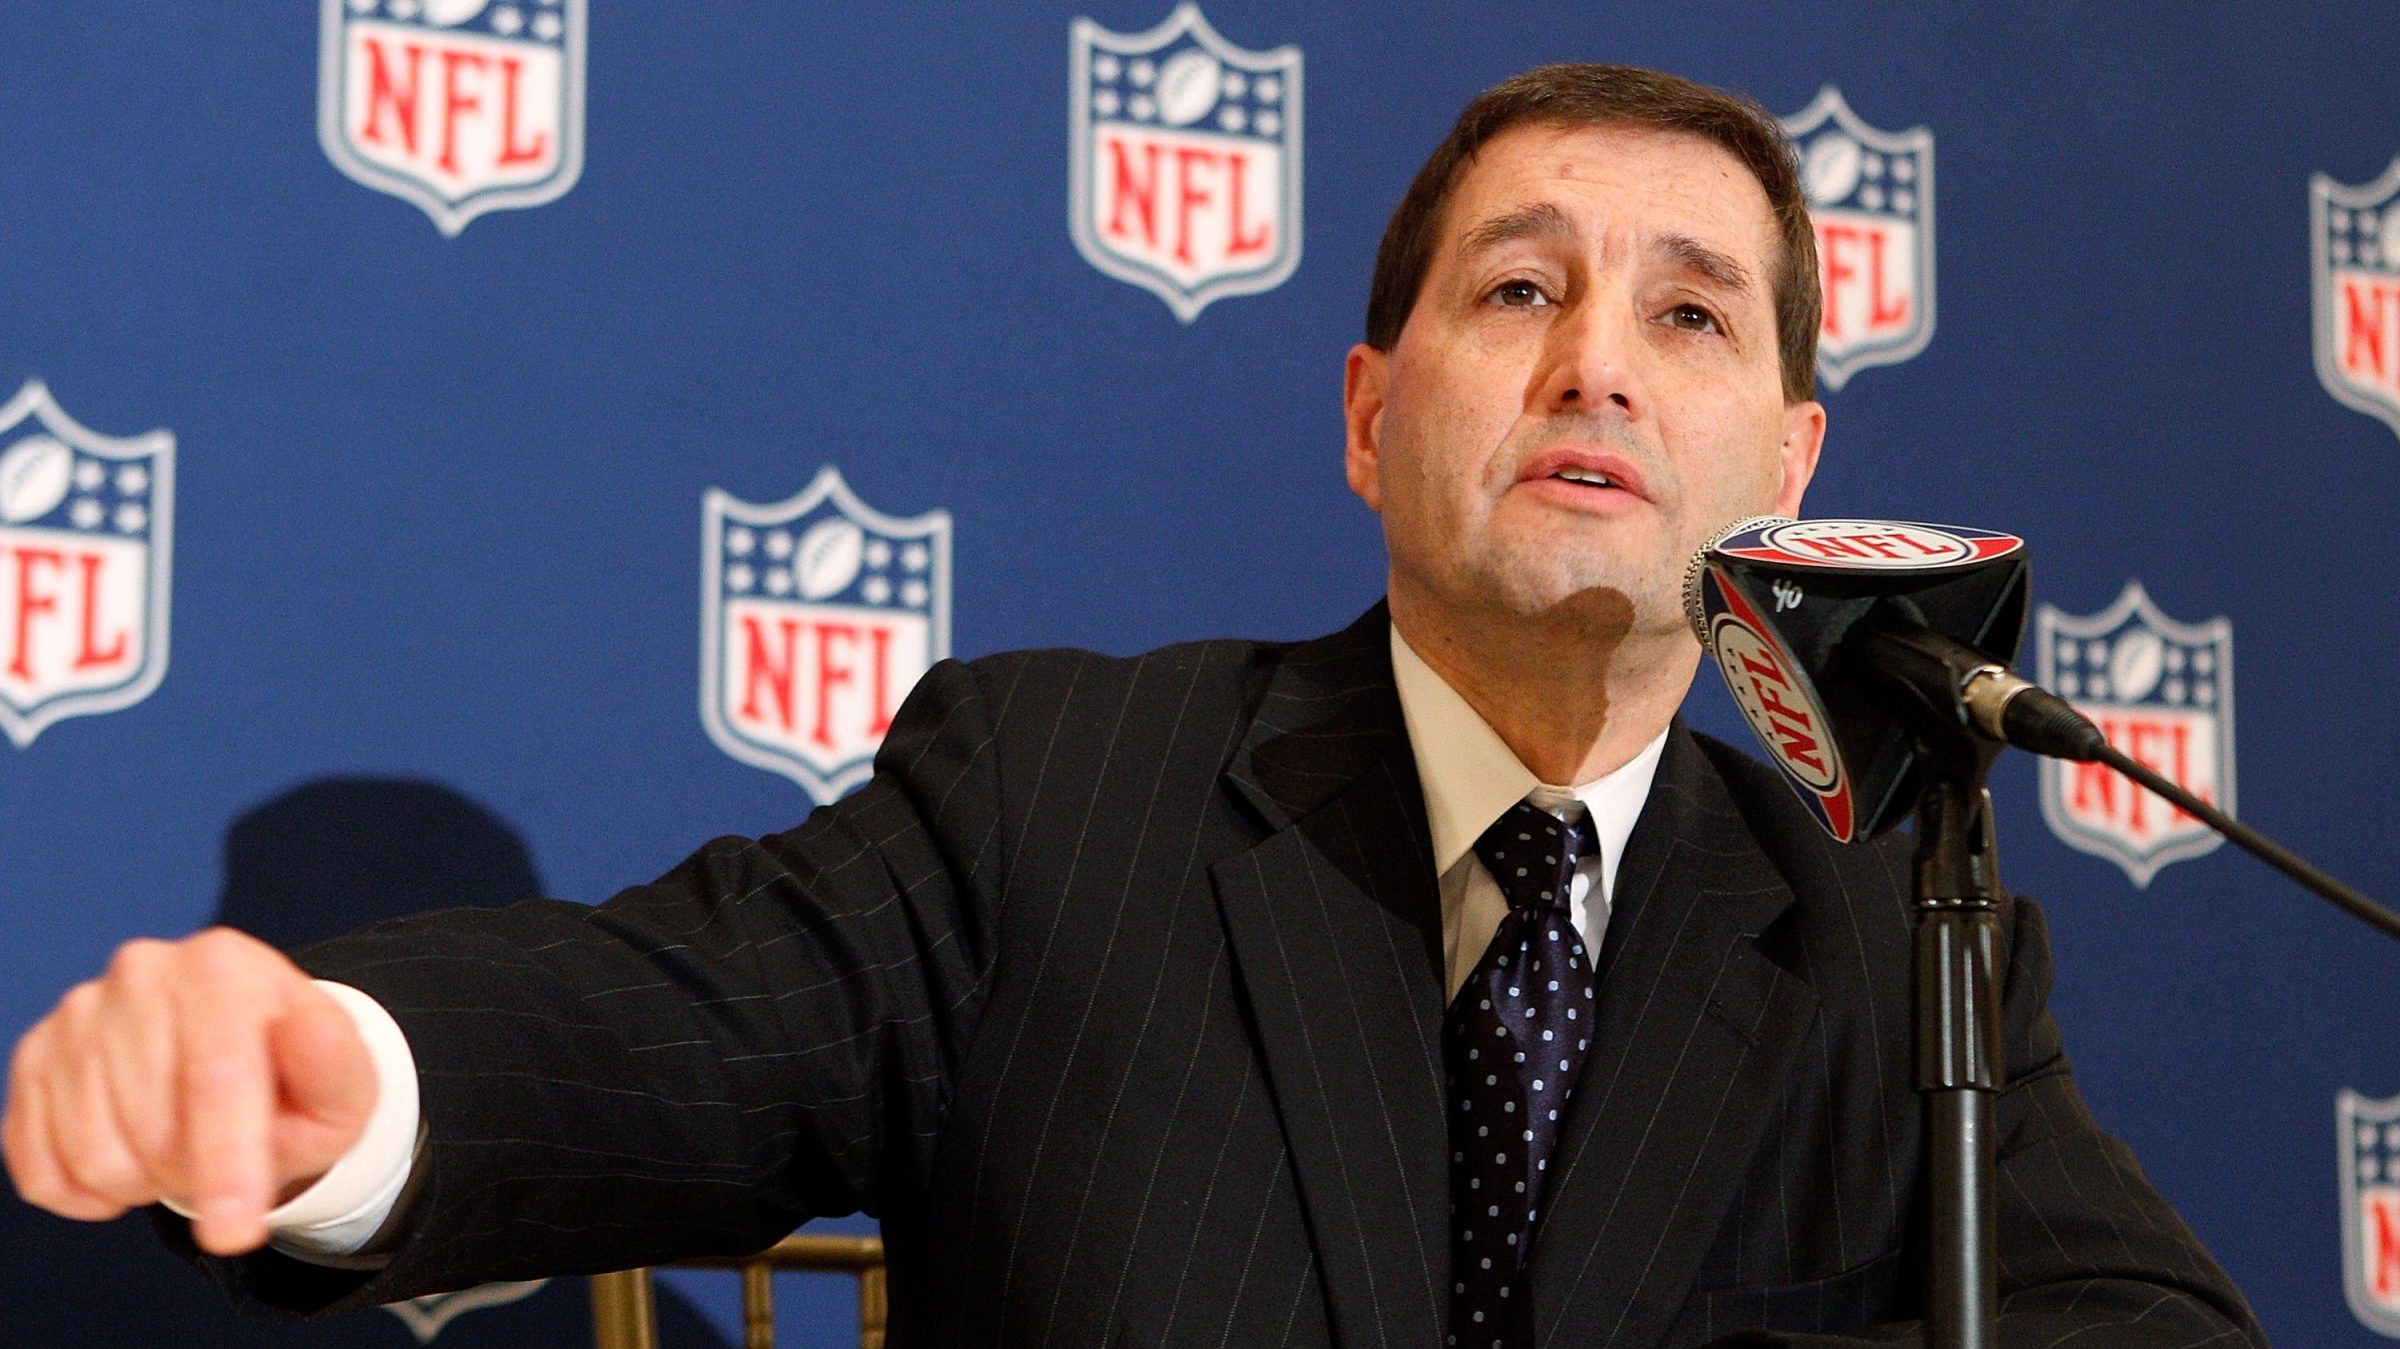 NFL executive Vice President Jeff Pash address the media at the Roosevelt Hotel on March 21, 2011 in New Orleans, Louisiana.